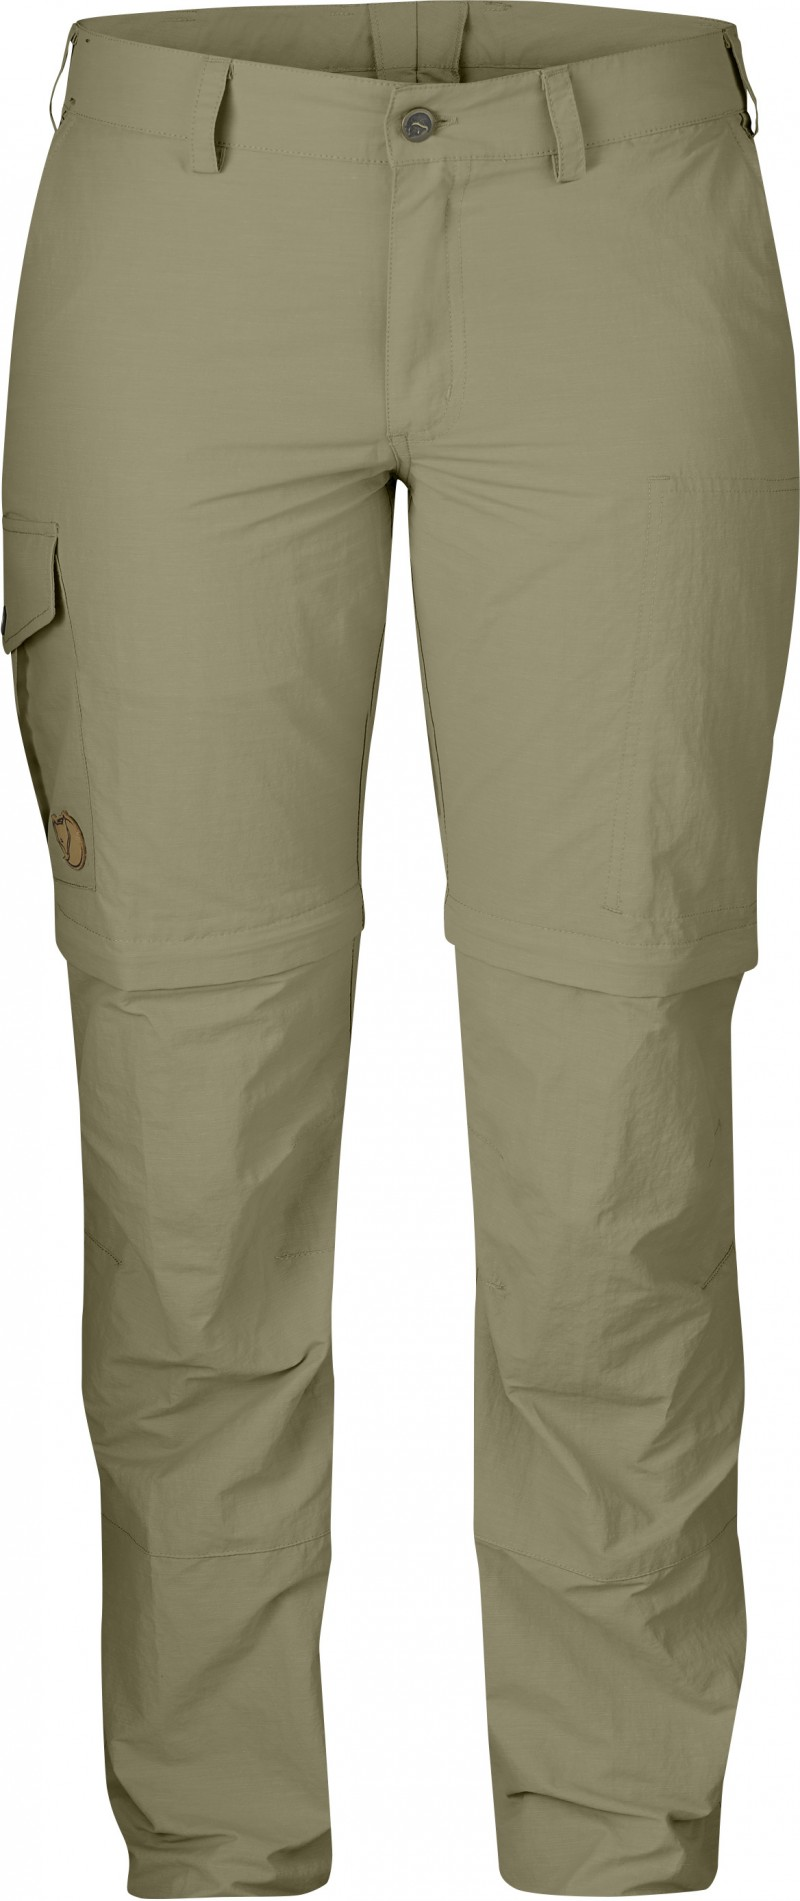 FjallRaven Karla Winter Trousers Light Khaki-30